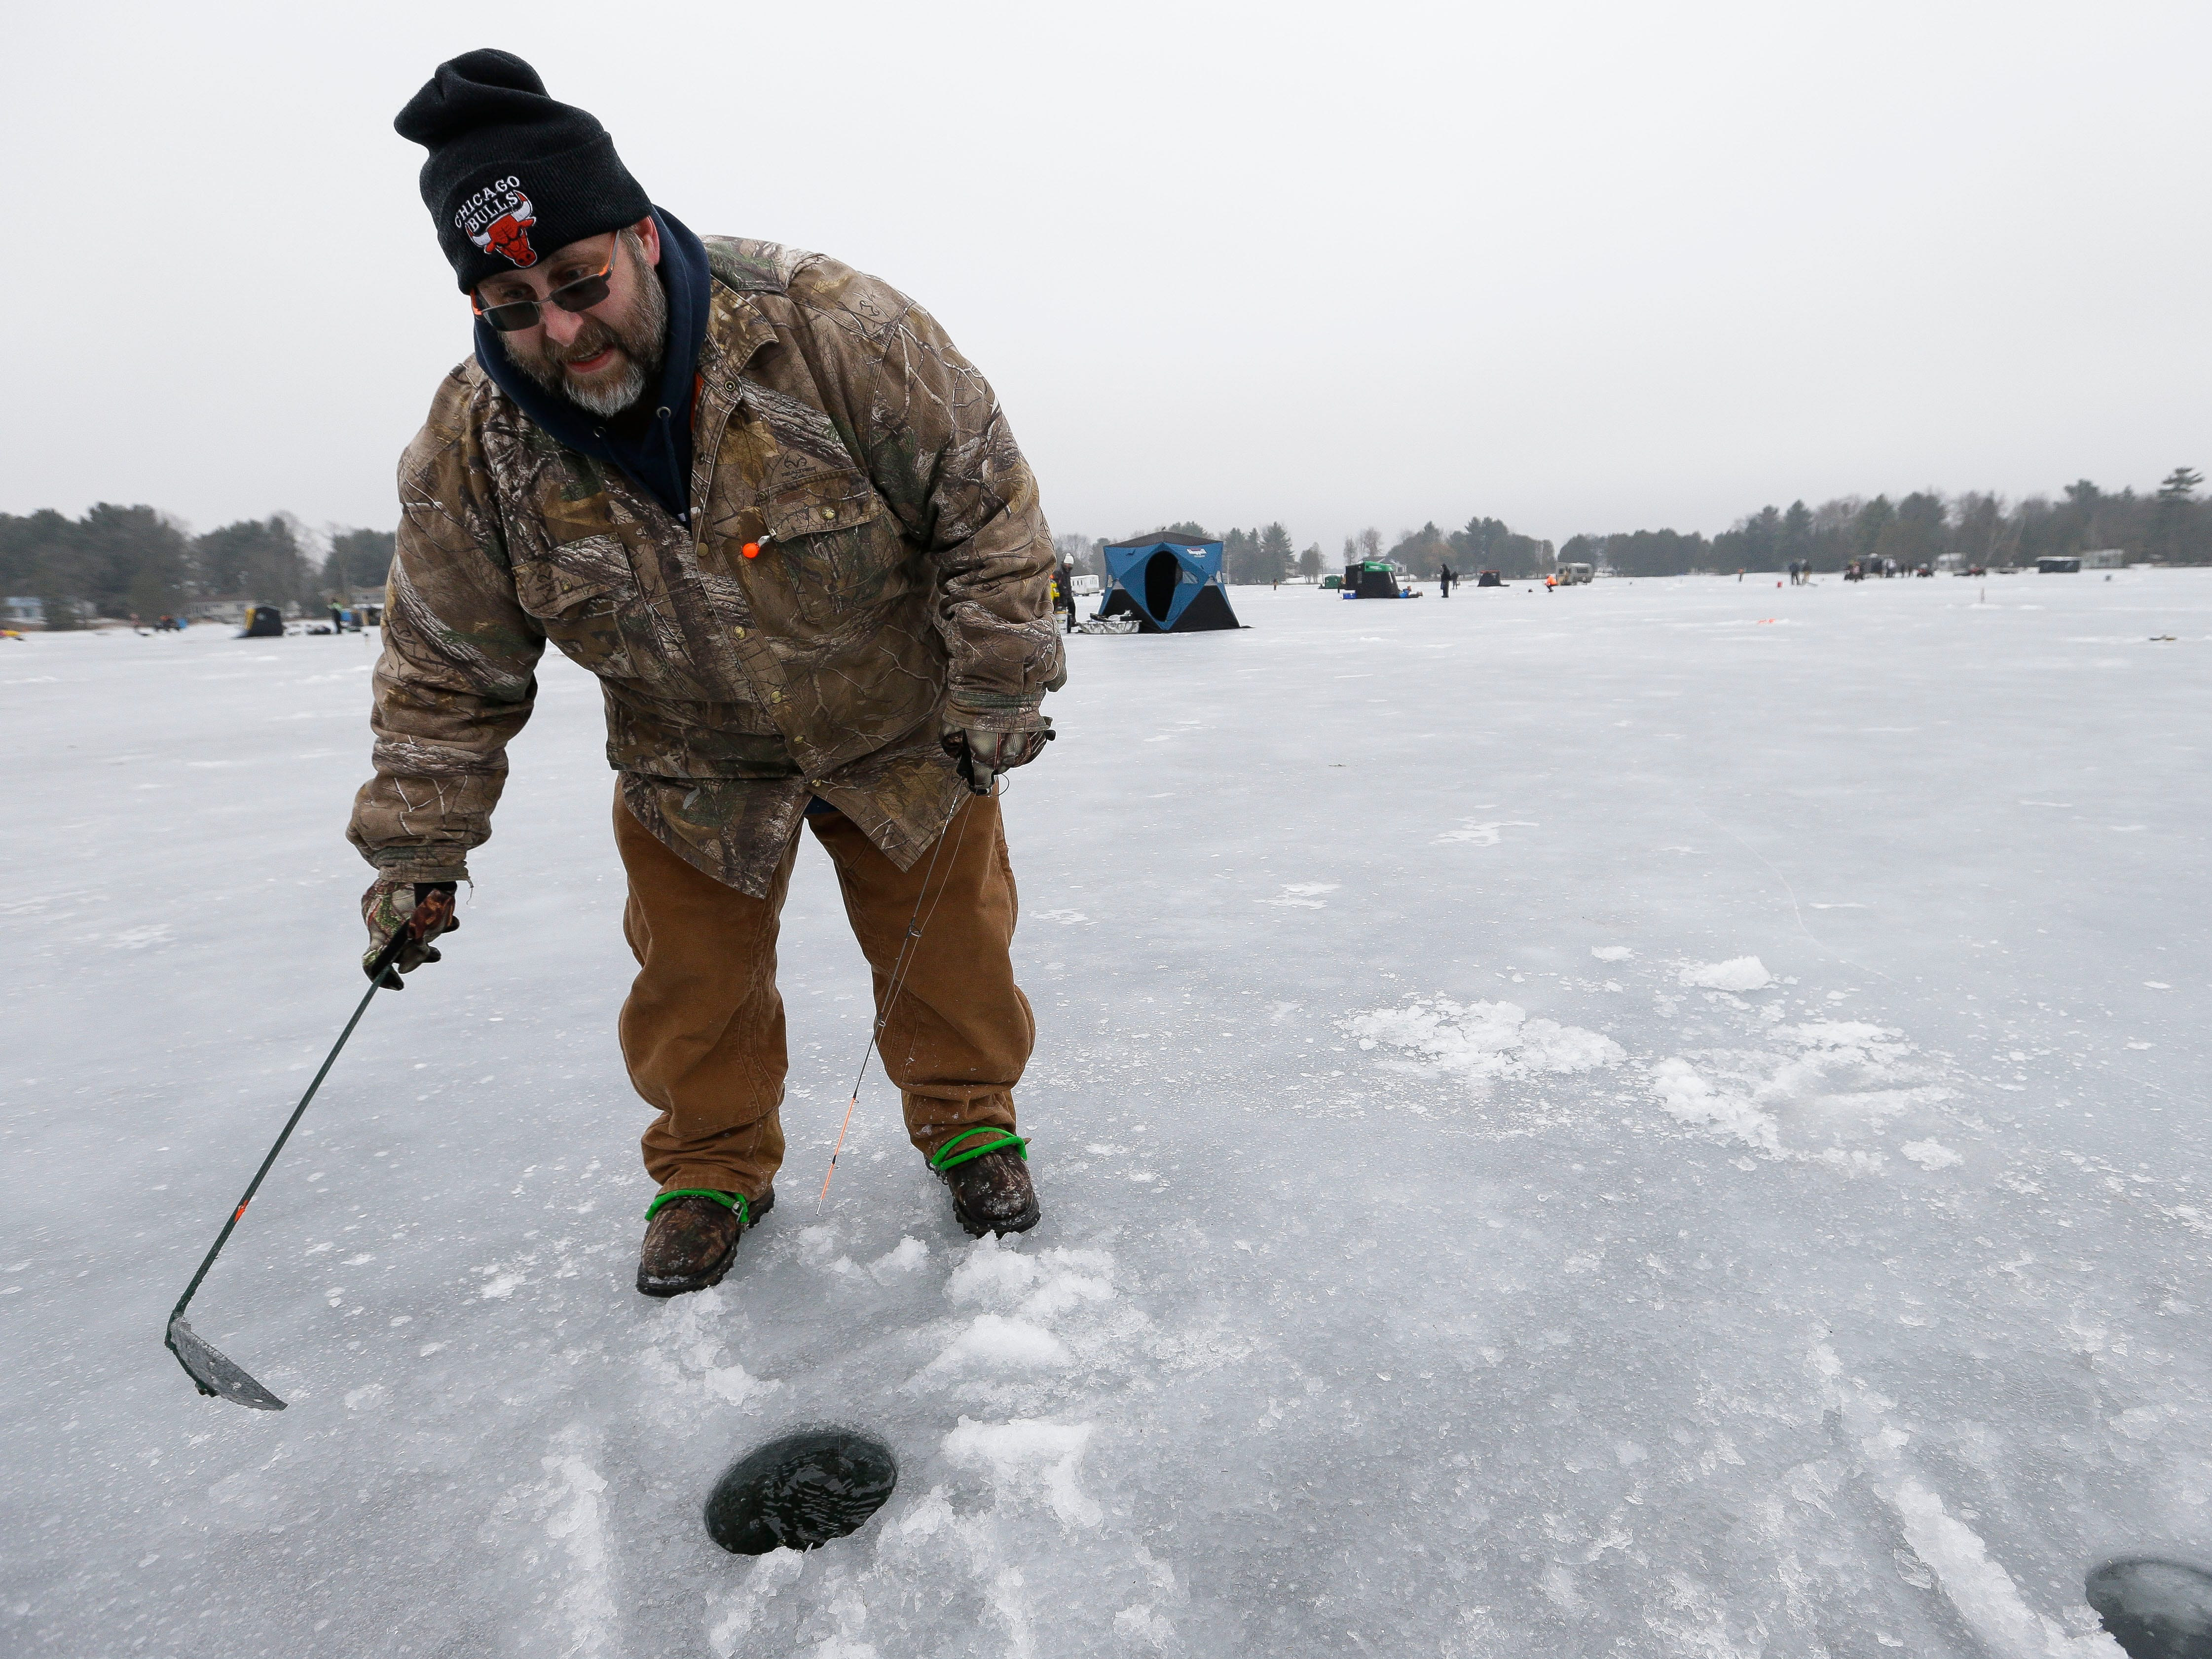 Steve Steinhauer scoops fresh ice out of his fishing hole on Saturday, January 12, 2019, during the Rosholt Blizzard Busters Fisheree at Lake Helen outside Rosholt, Wis.Tork Mason/USA TODAY NETWORK-Wisconsin